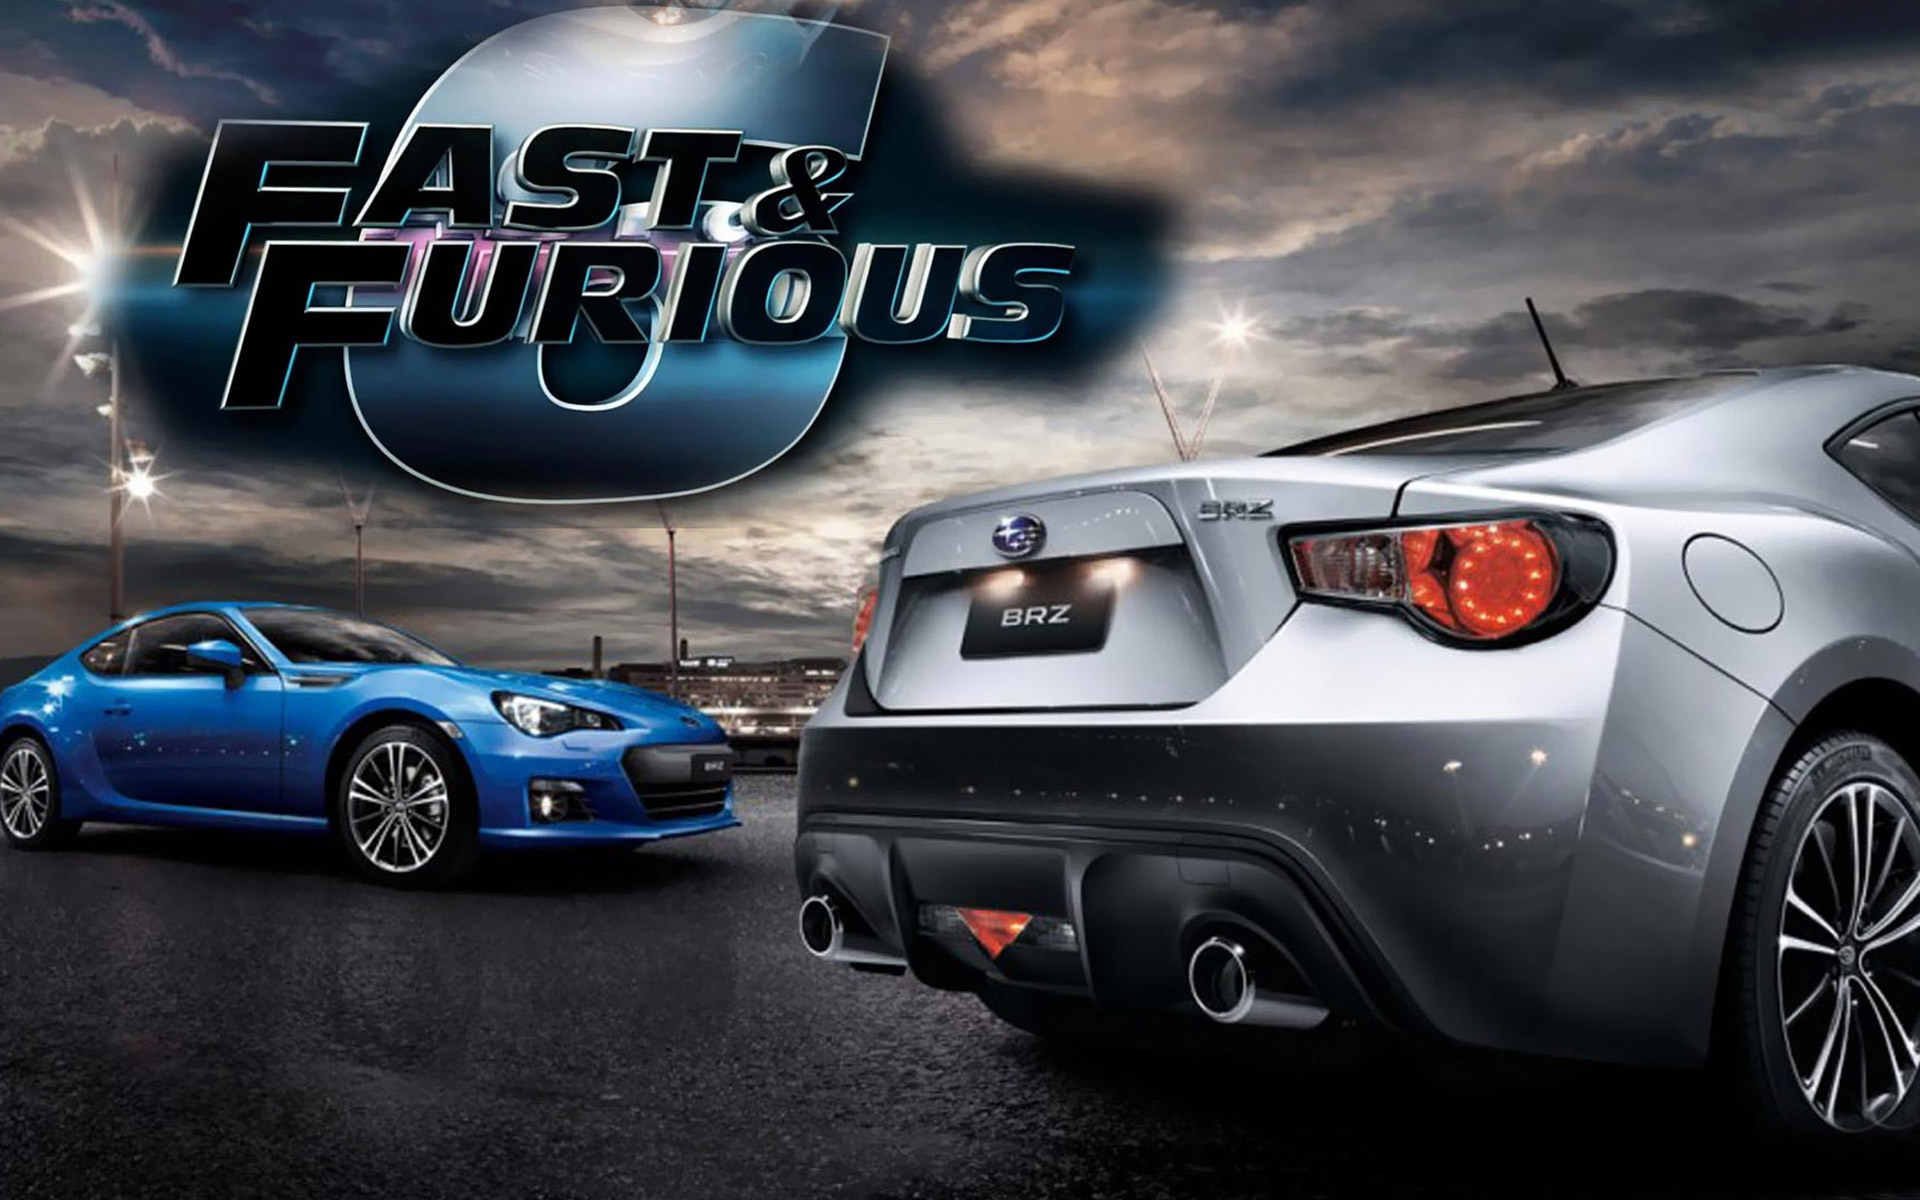 74 ] Fast And Furious Backgrounds On WallpaperSafari